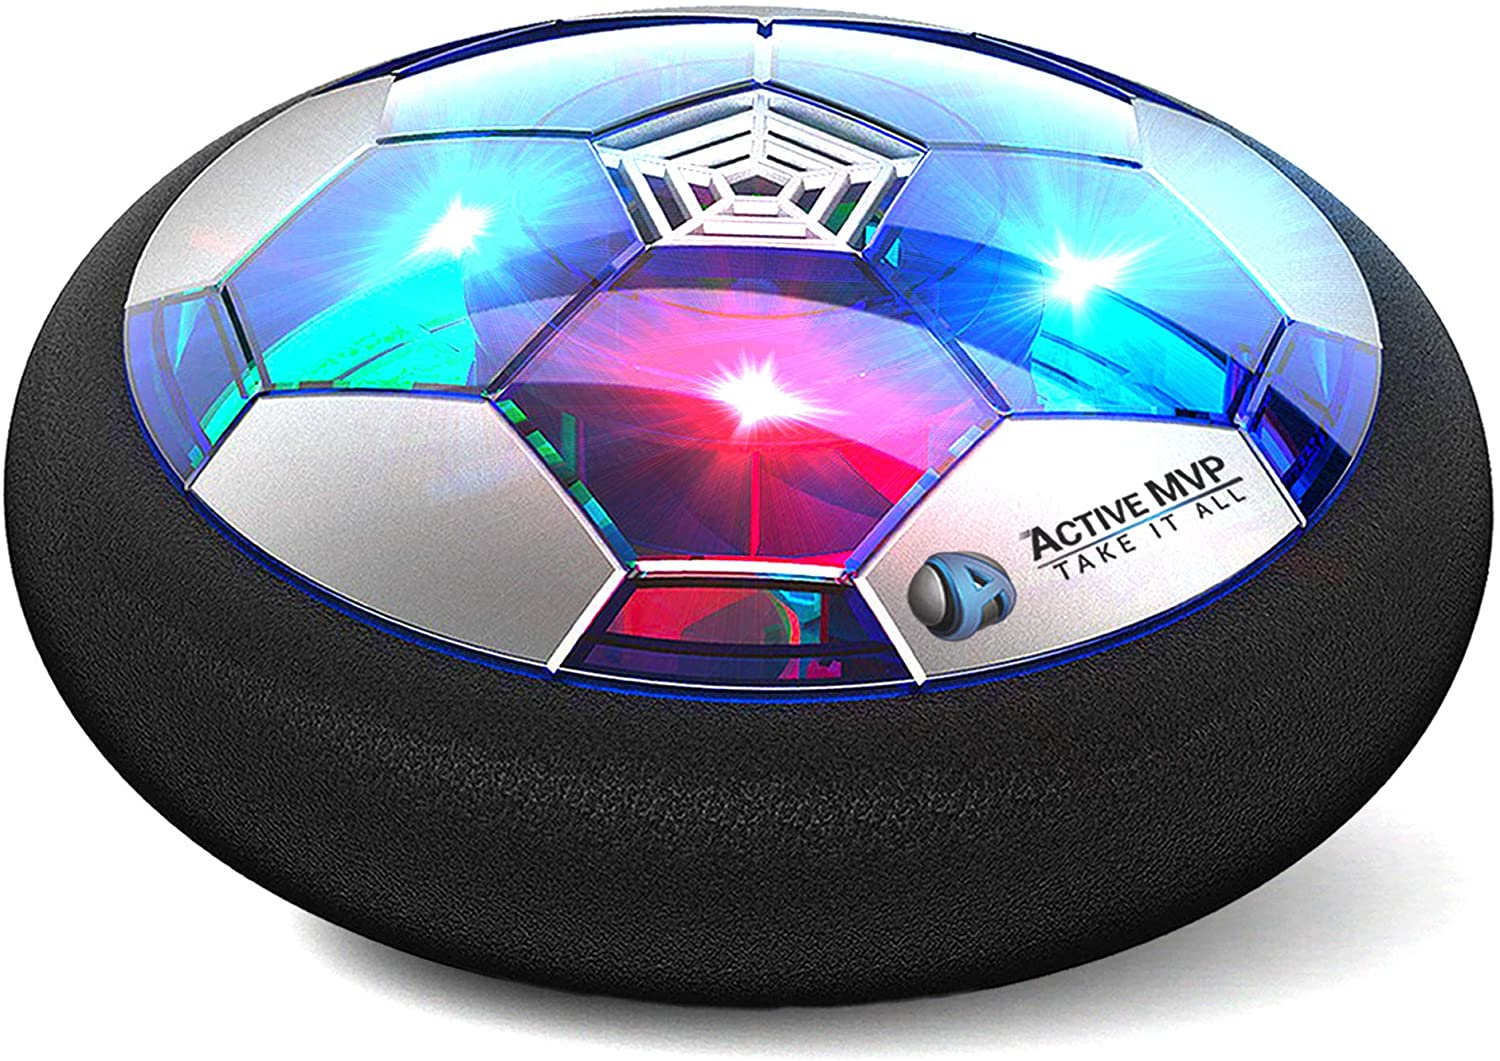 Hover Soccer Ball Boy Toys Rechargeable, Toddlers Kids Indoor Air Soccer Ball Floating LED Light Up, Power Kick Disc Fun with Foam Bumper (No AA Battery Needed) Gift For Boys Girls Age 2 3 4 5 6 7 8 9: Sports & Outdoors